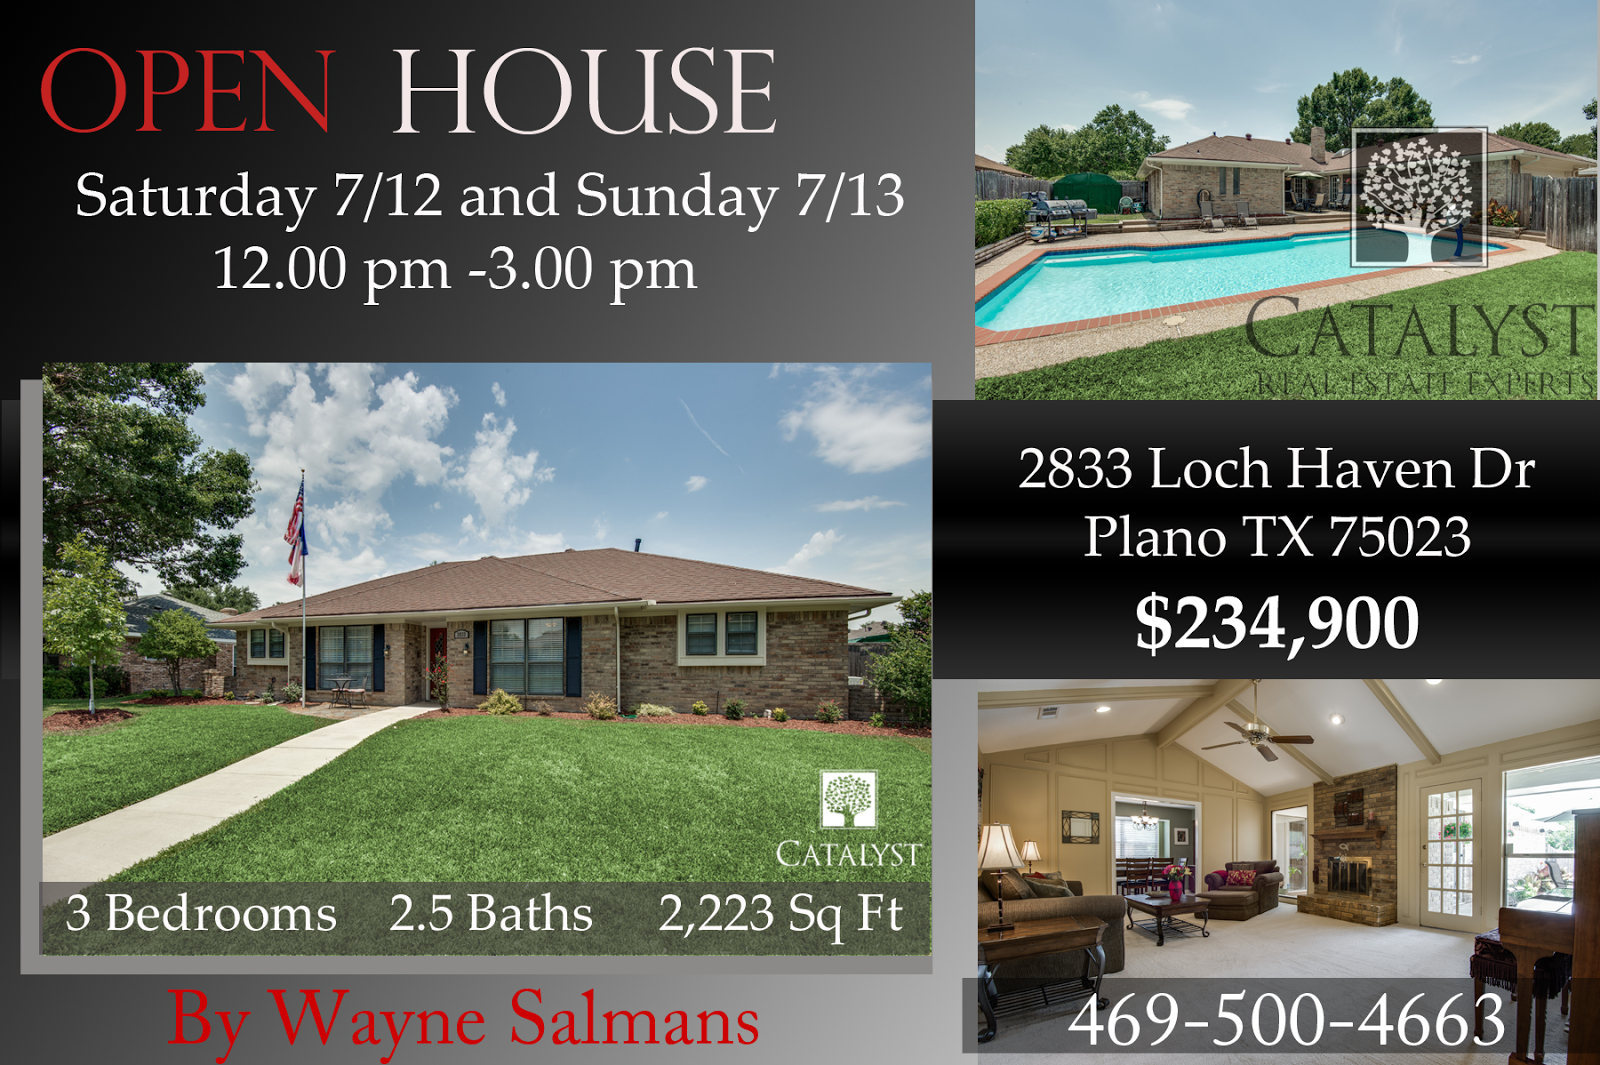 open house,2833 Loch Haven Dr, Plano, TX 75023, moving to plano, buy a house in Plano